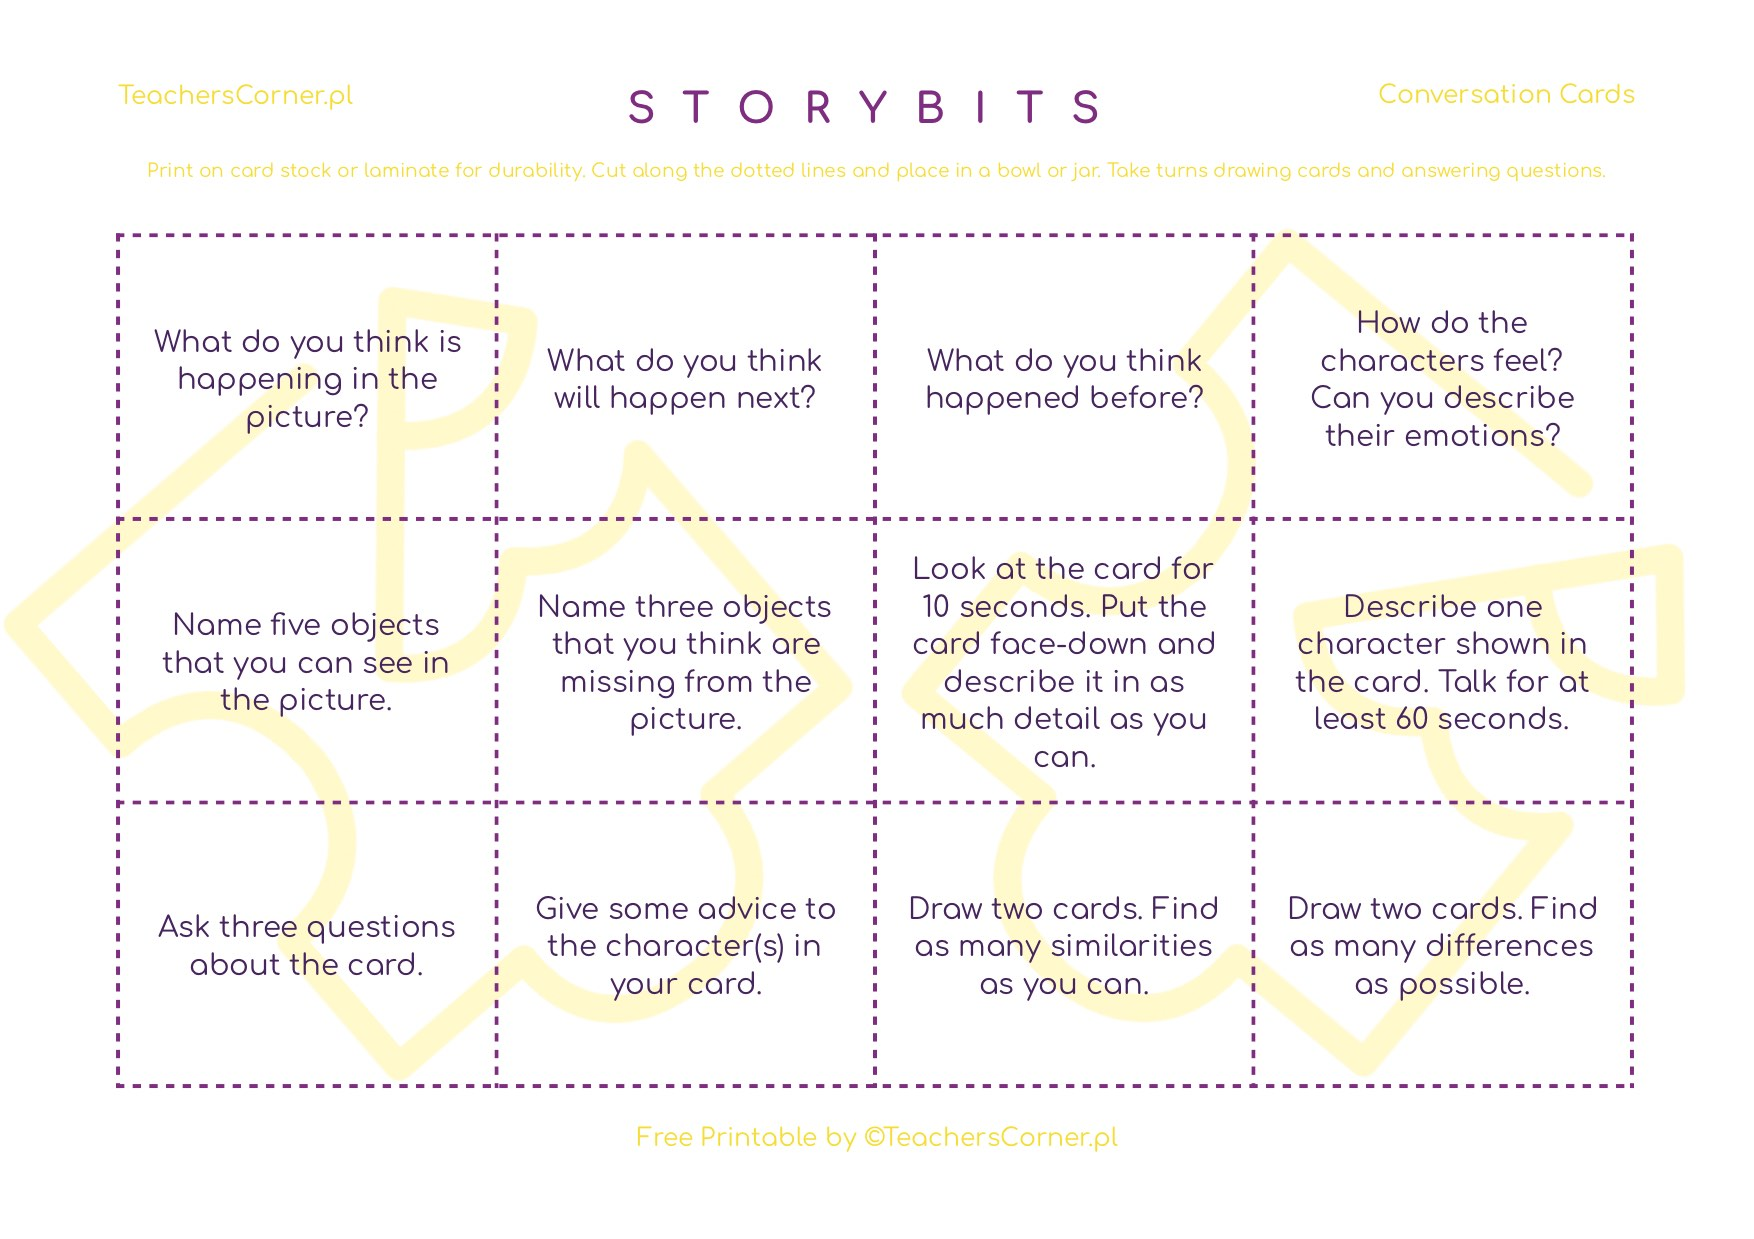 StoryBits Conversation Cards